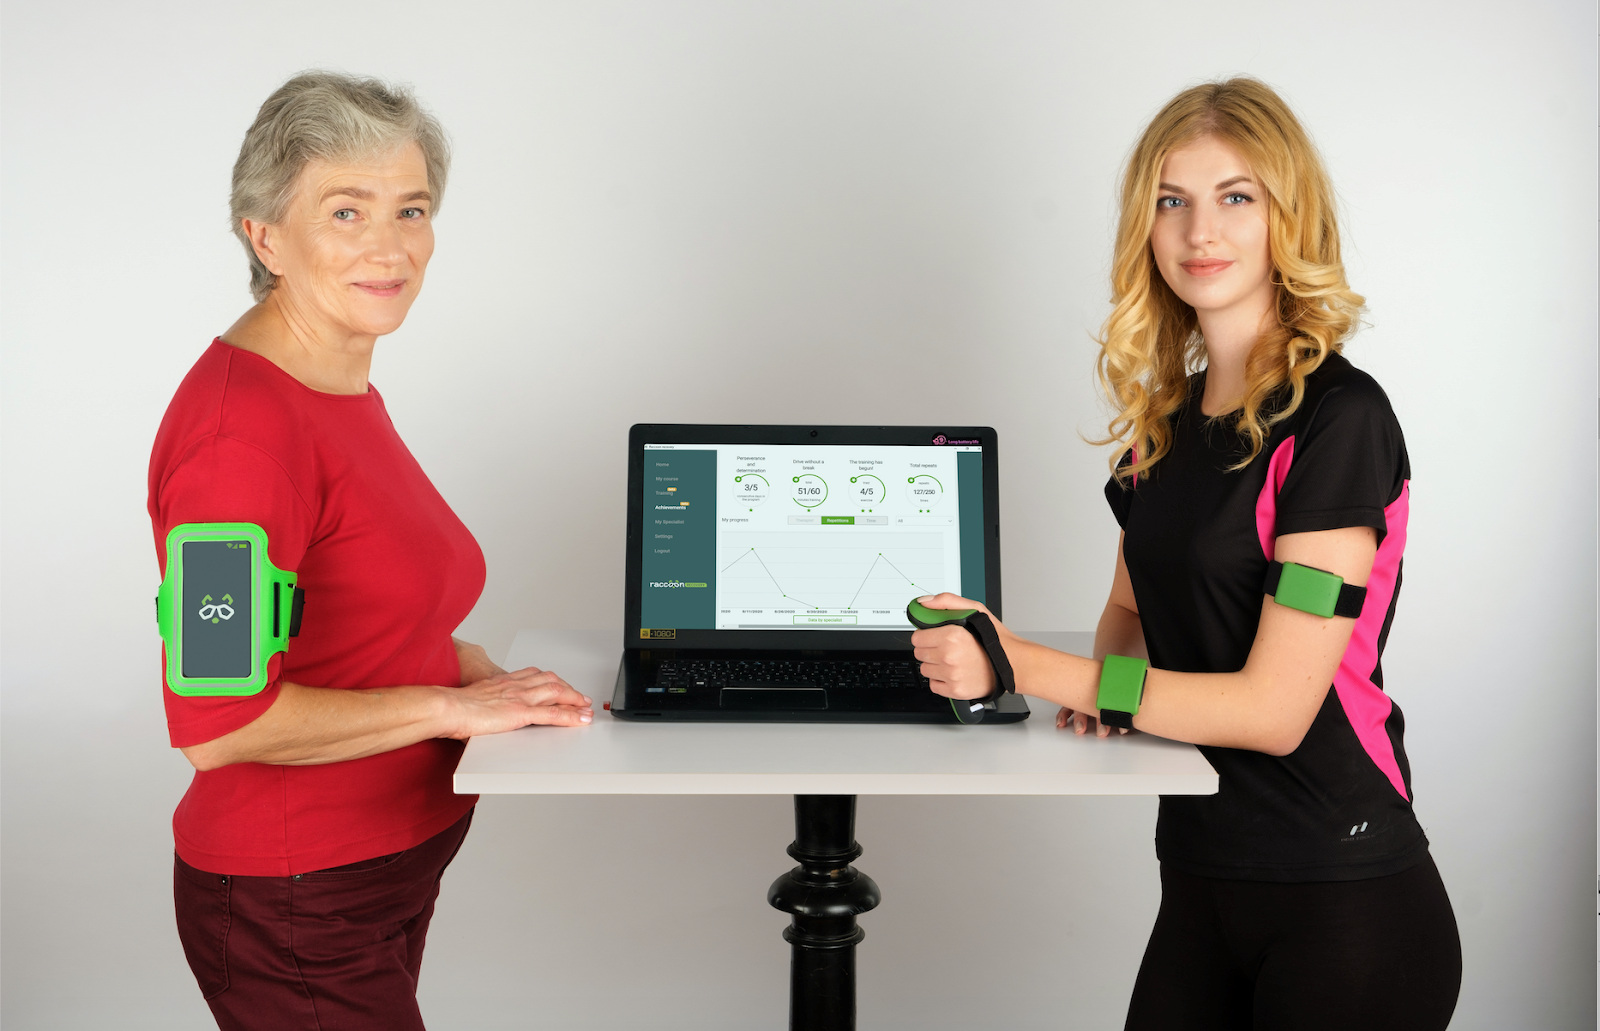 Also, Racoon.World raises further €660K for its physiotherapy telemedicine platform.